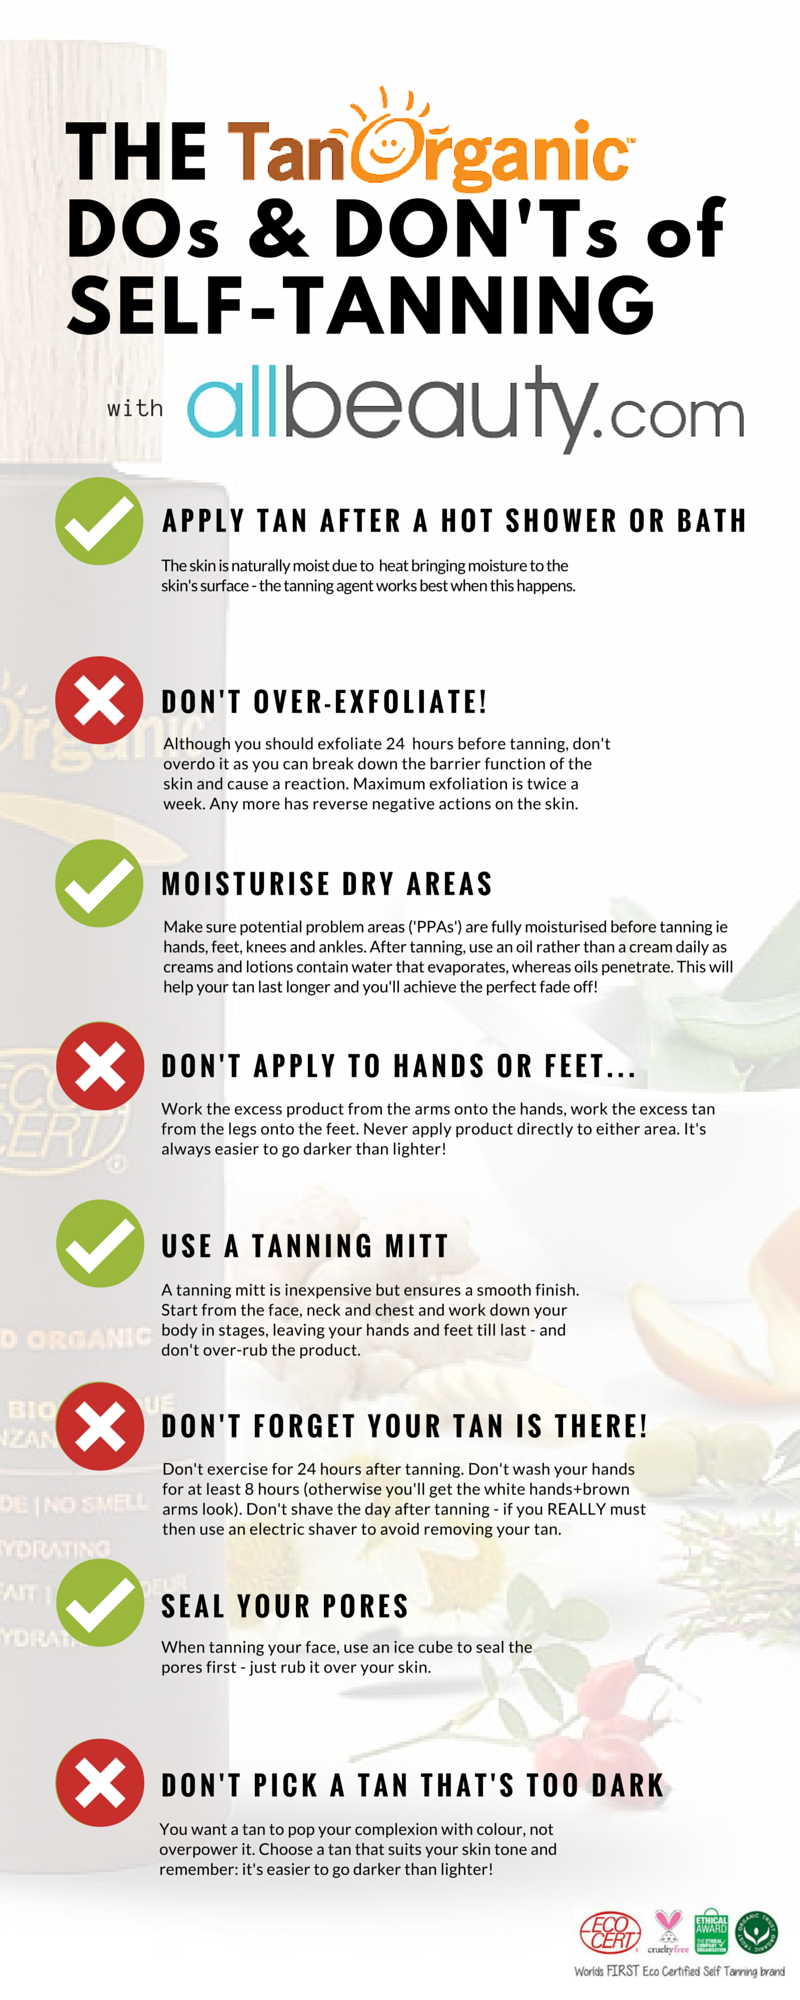 SelfTanning Dos & Don'ts with &